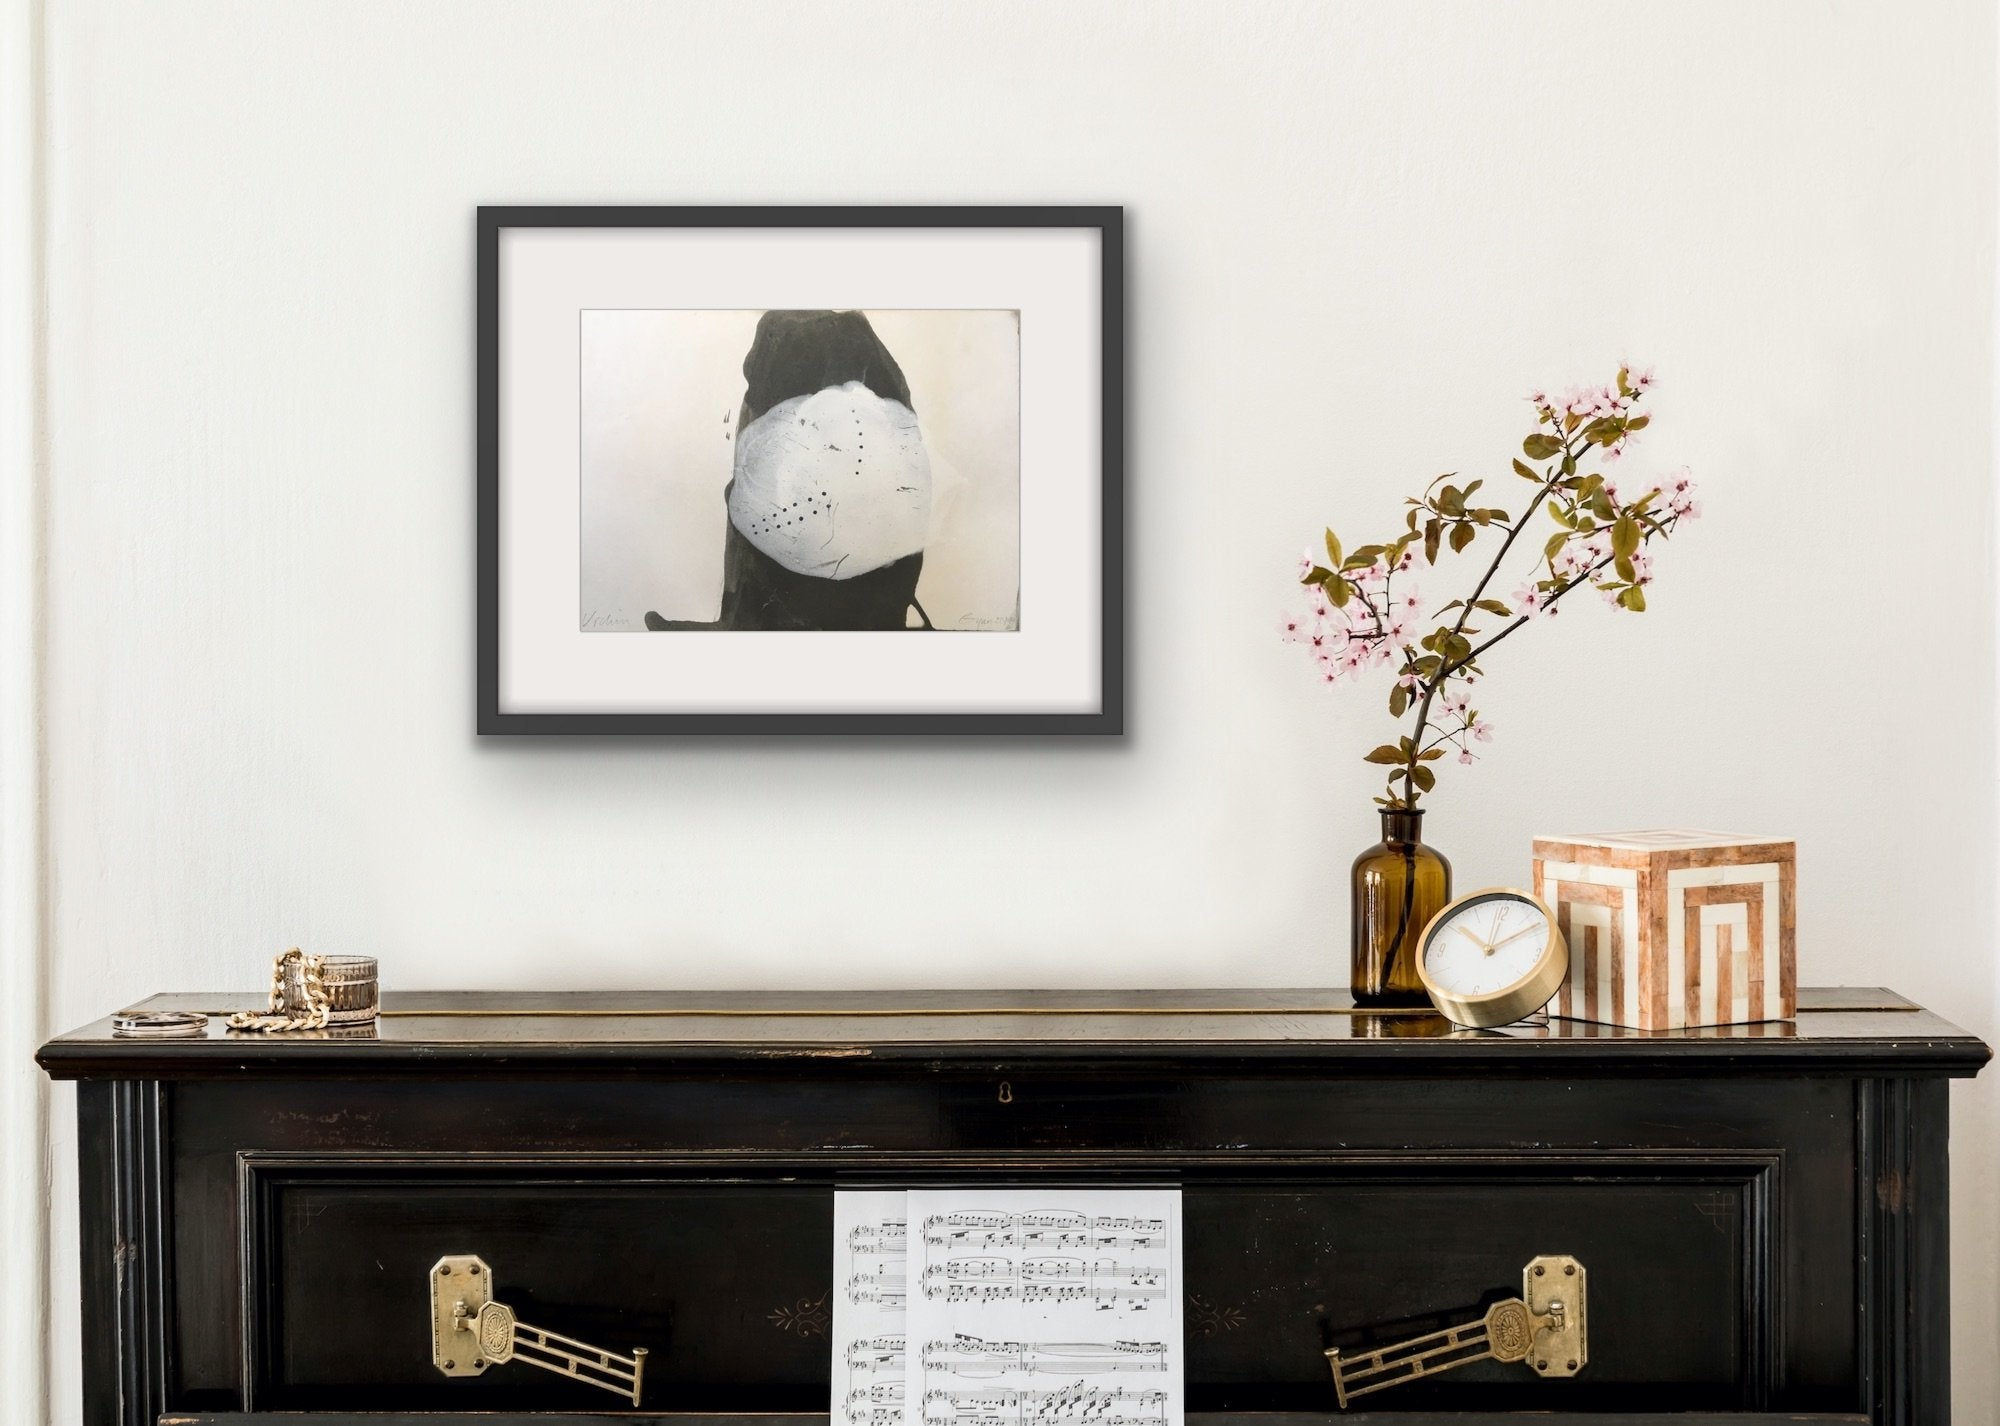 'Urchin', a minimalist painting by contemporary, woman artist Frances Gynn, shown in situ